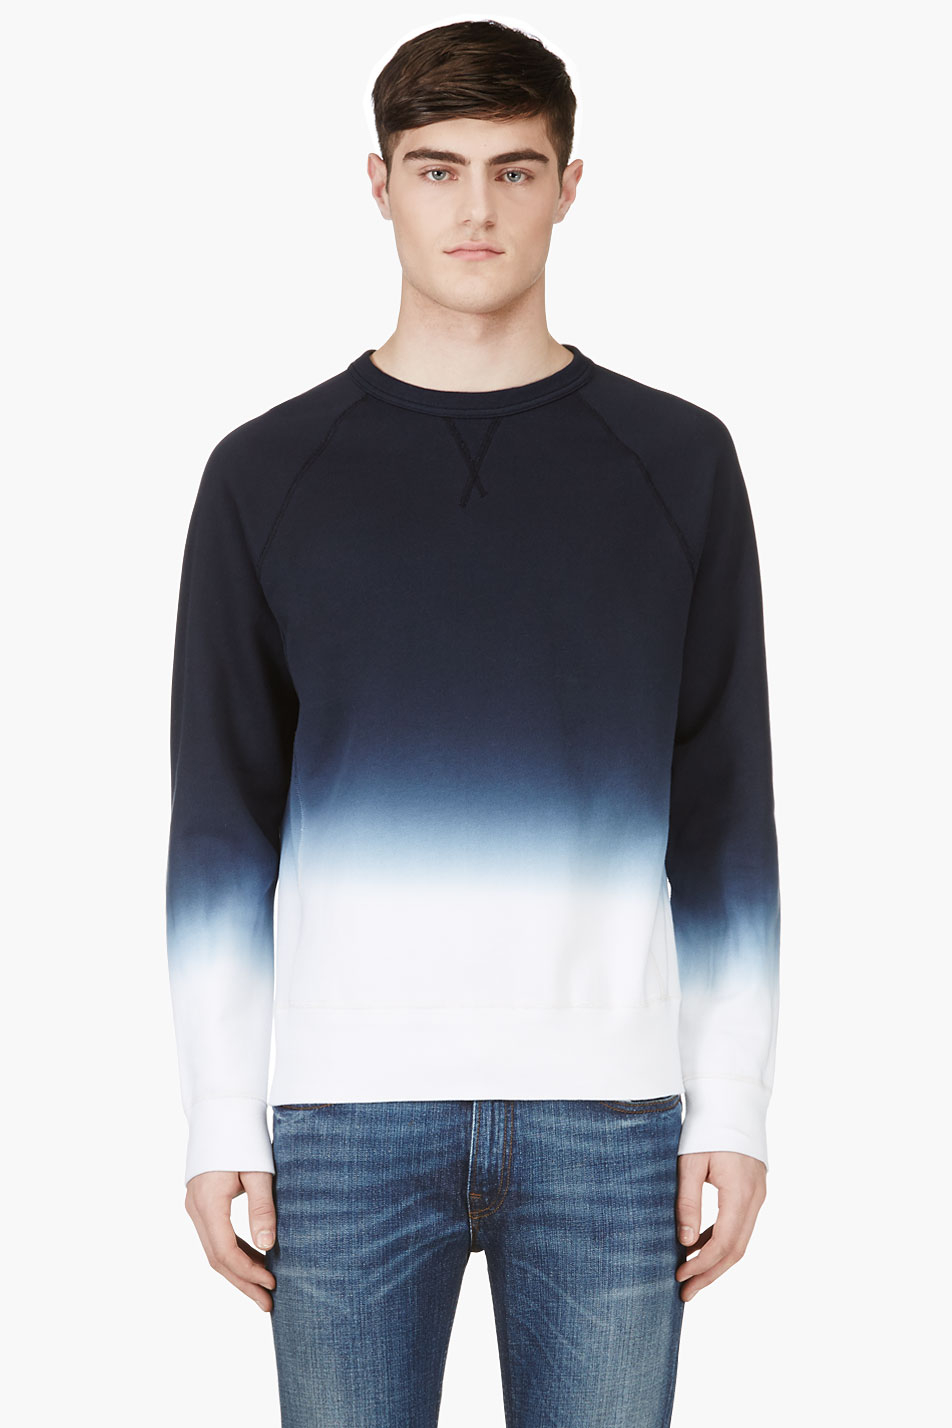 lyst acne studios navy ombre college degrade sweater in blue for men. Black Bedroom Furniture Sets. Home Design Ideas